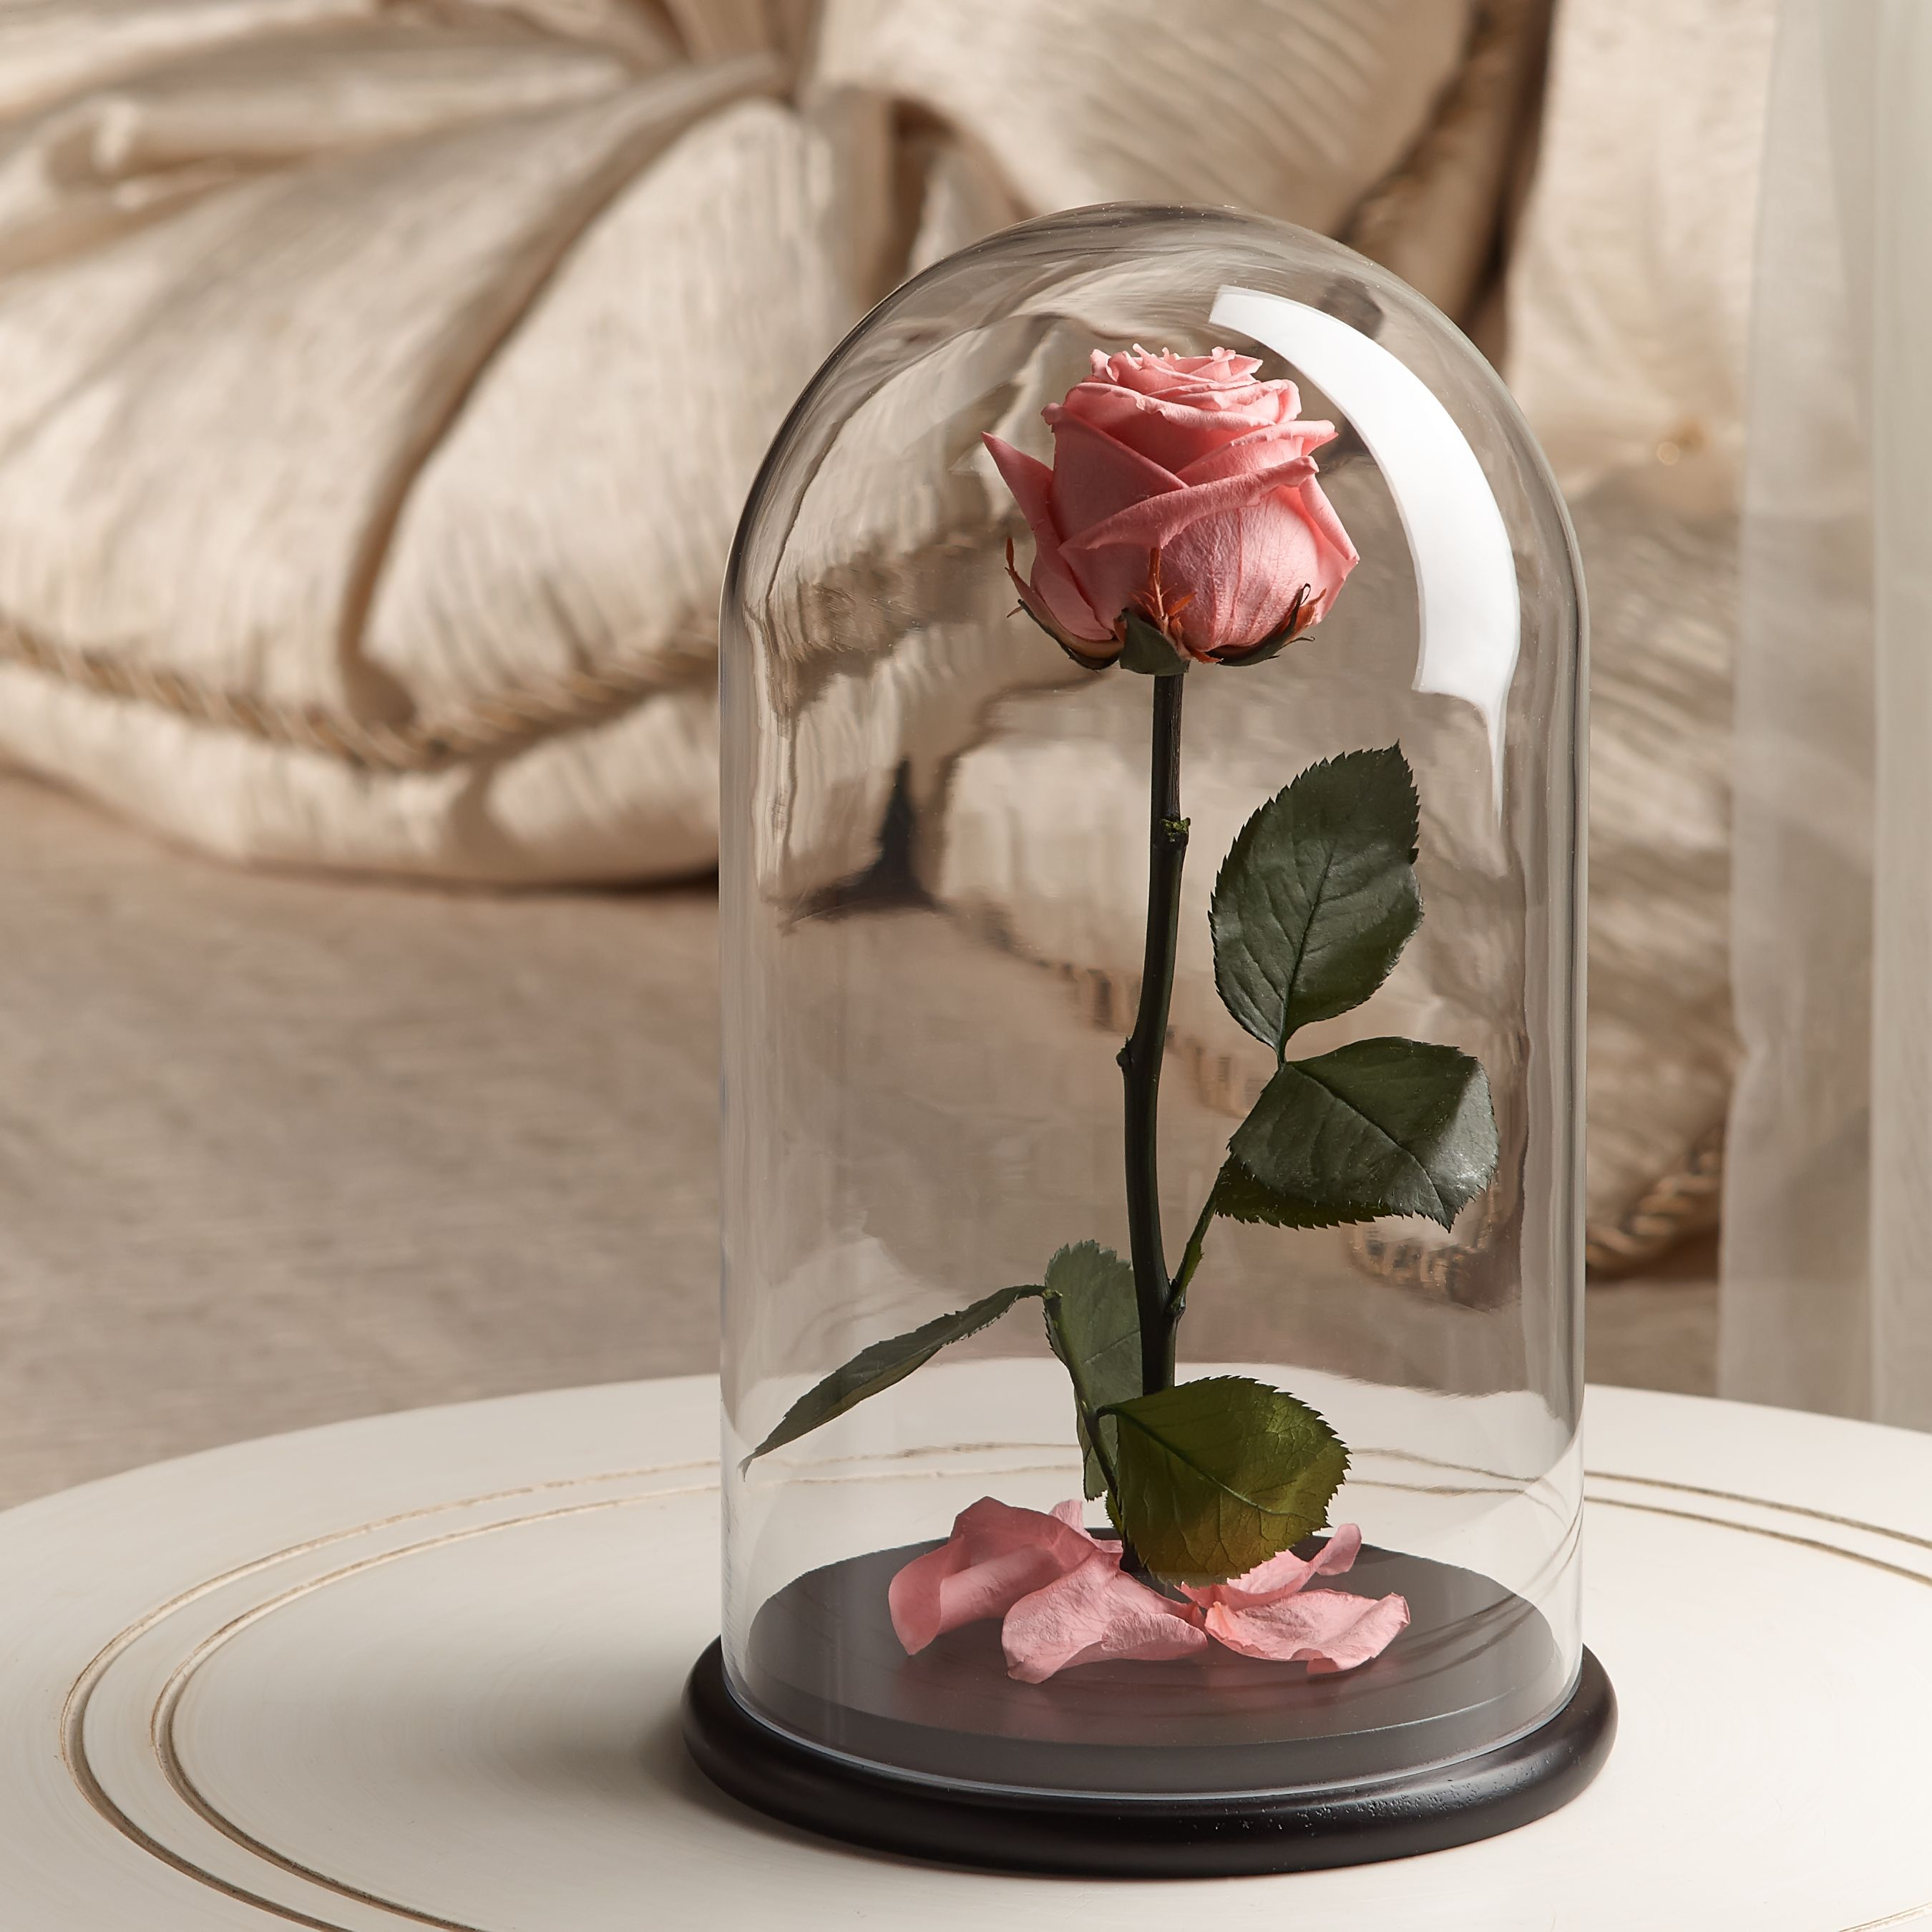 Beauty And The Beast Rose Baby Pink Gift Box Rose In Glass